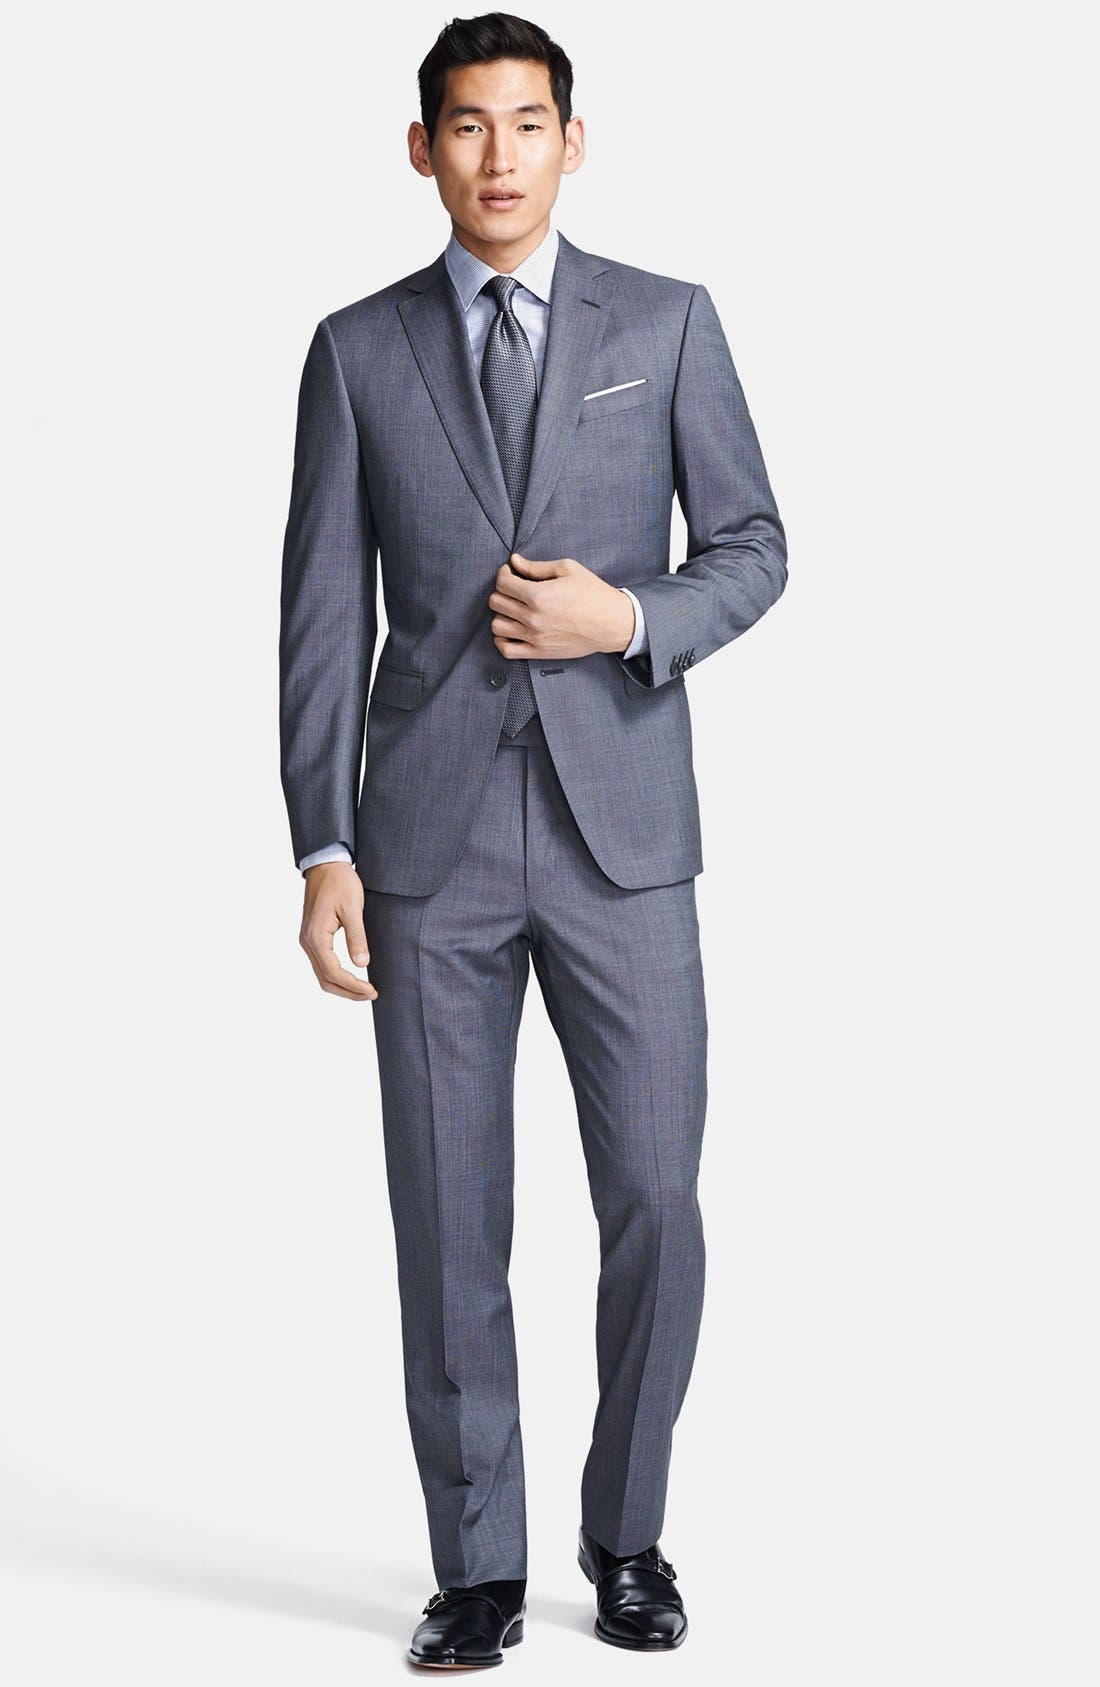 Main Image - Z Zegna Trim Fit Grey Textured Wool Suit